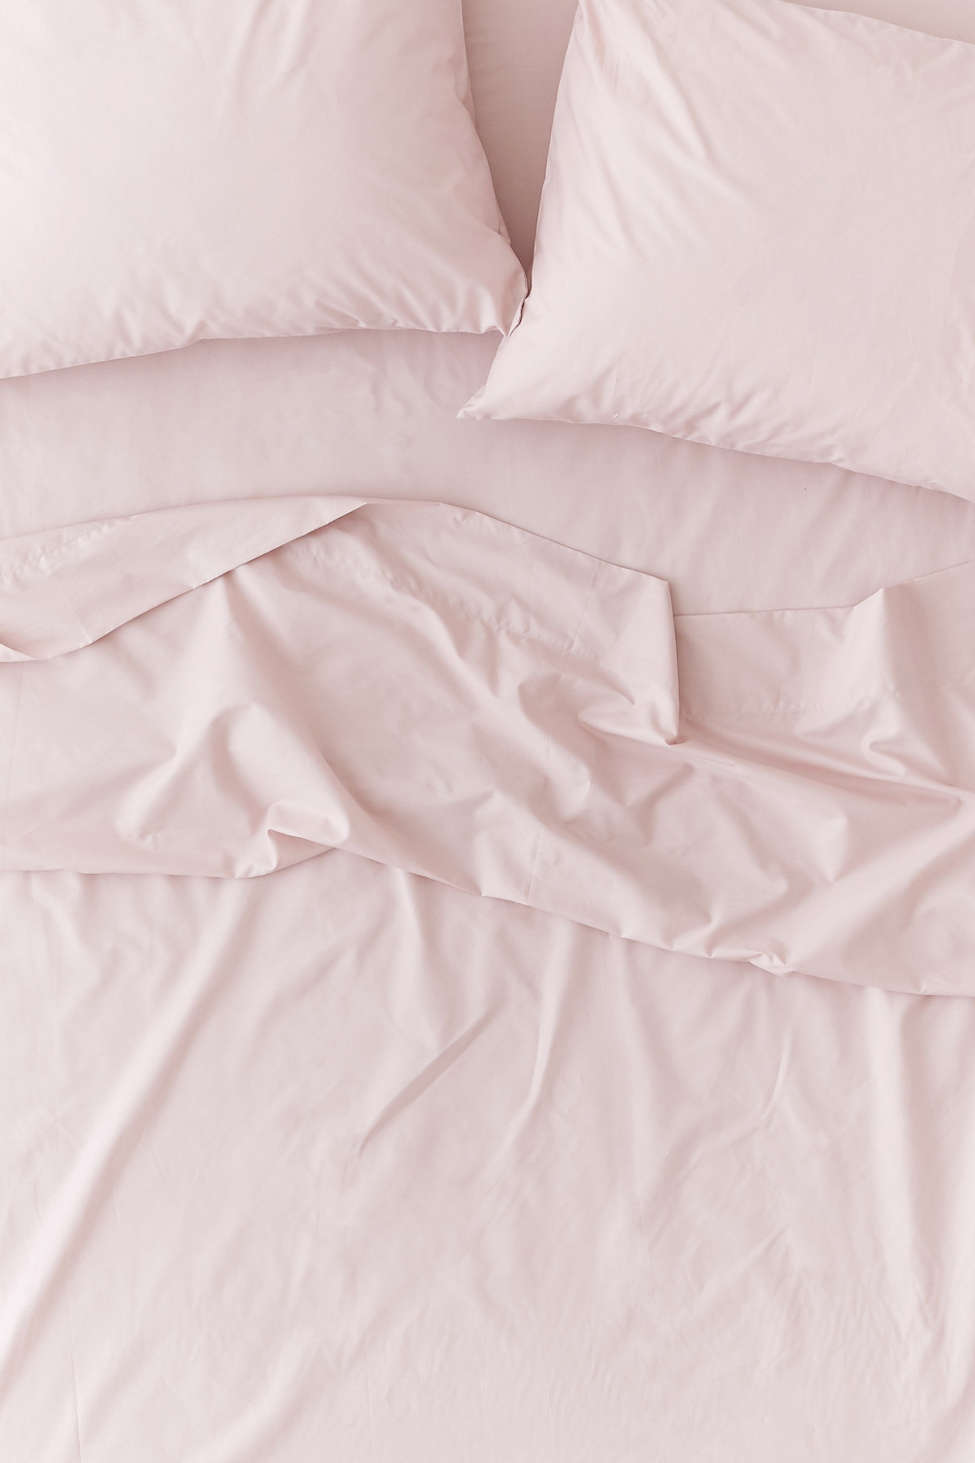 Slide View: 2: Solid Percale Cotton Sheet Set